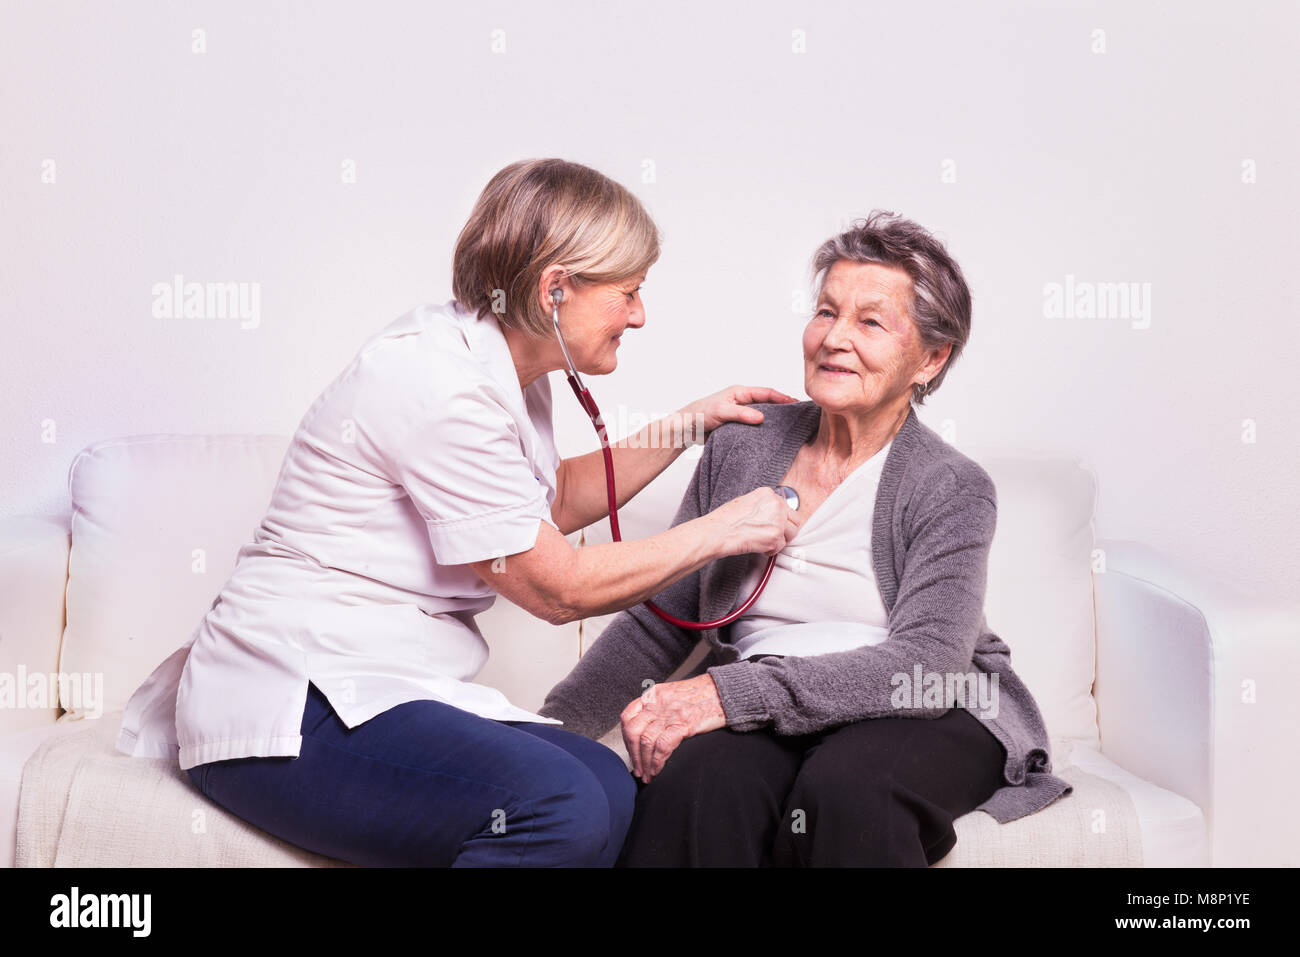 Studio portrait of a senior nurse examining an elderly woman. - Stock Image